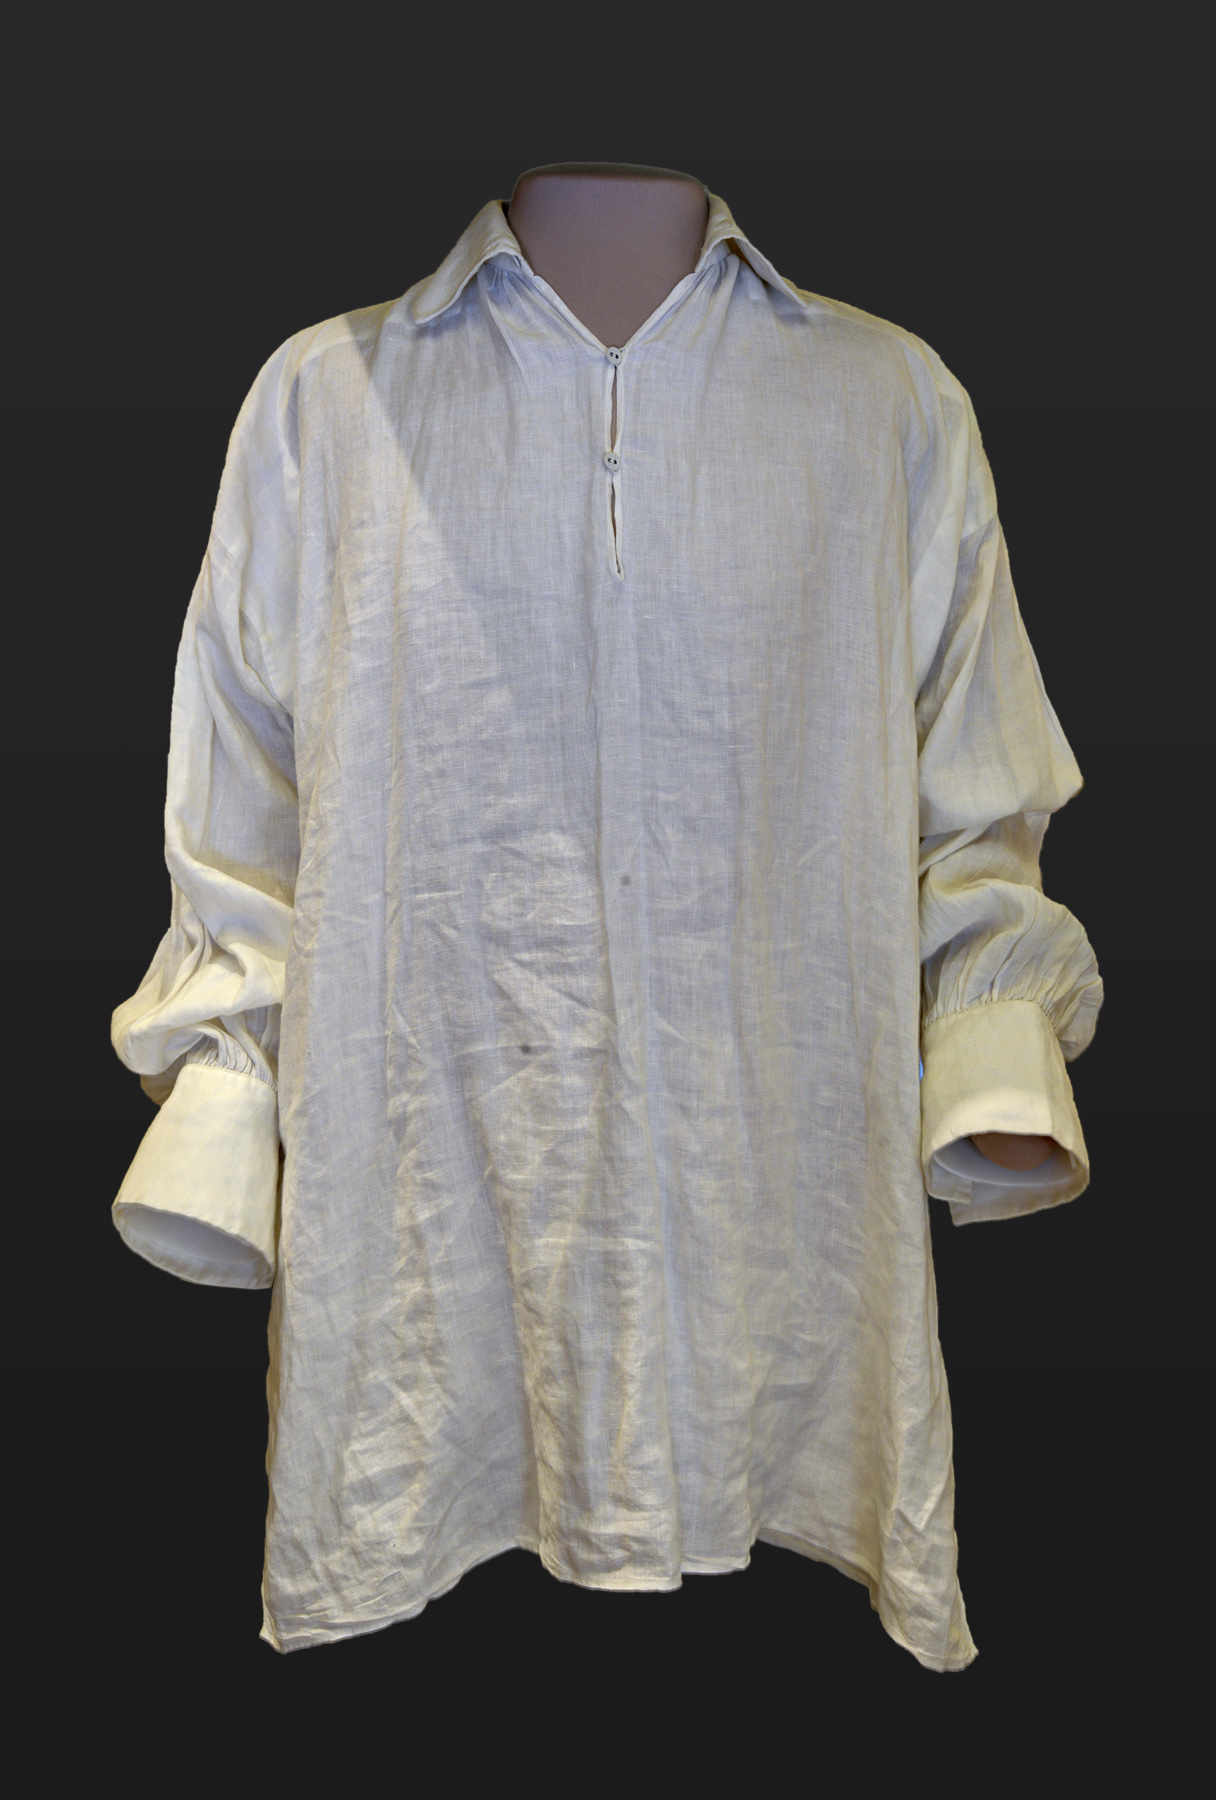 The shirt worn by actor Colin Firth during his portrayal of Mr. Darcy as he emerged from the Pemberley pond in the BBC's 1995 Pride and Prejudice production